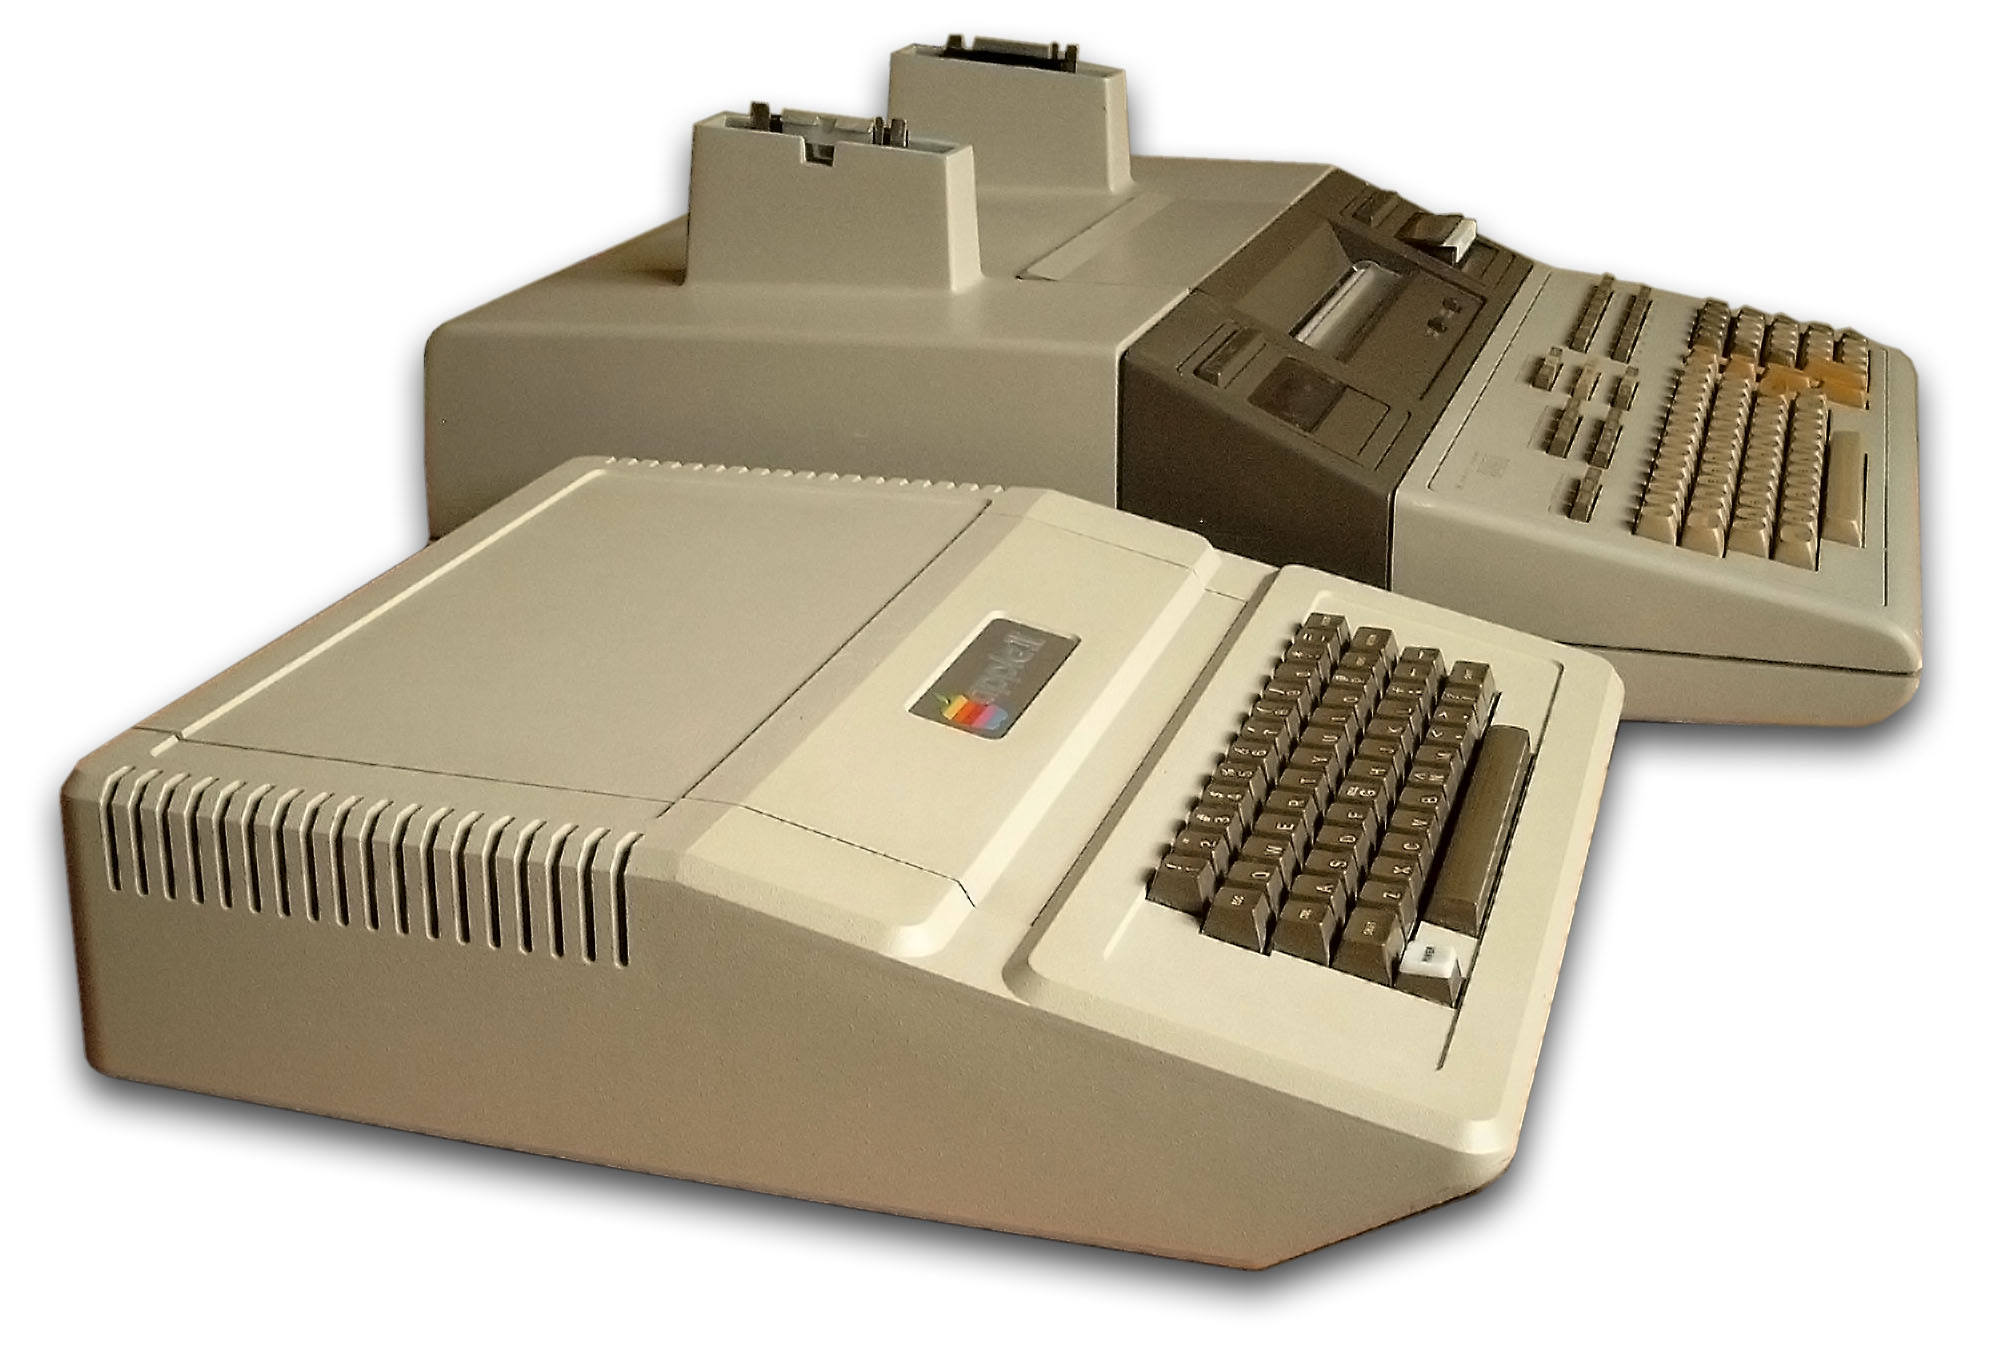 Comparison HP 9845 vs  Apple II and Commodore PET 2001